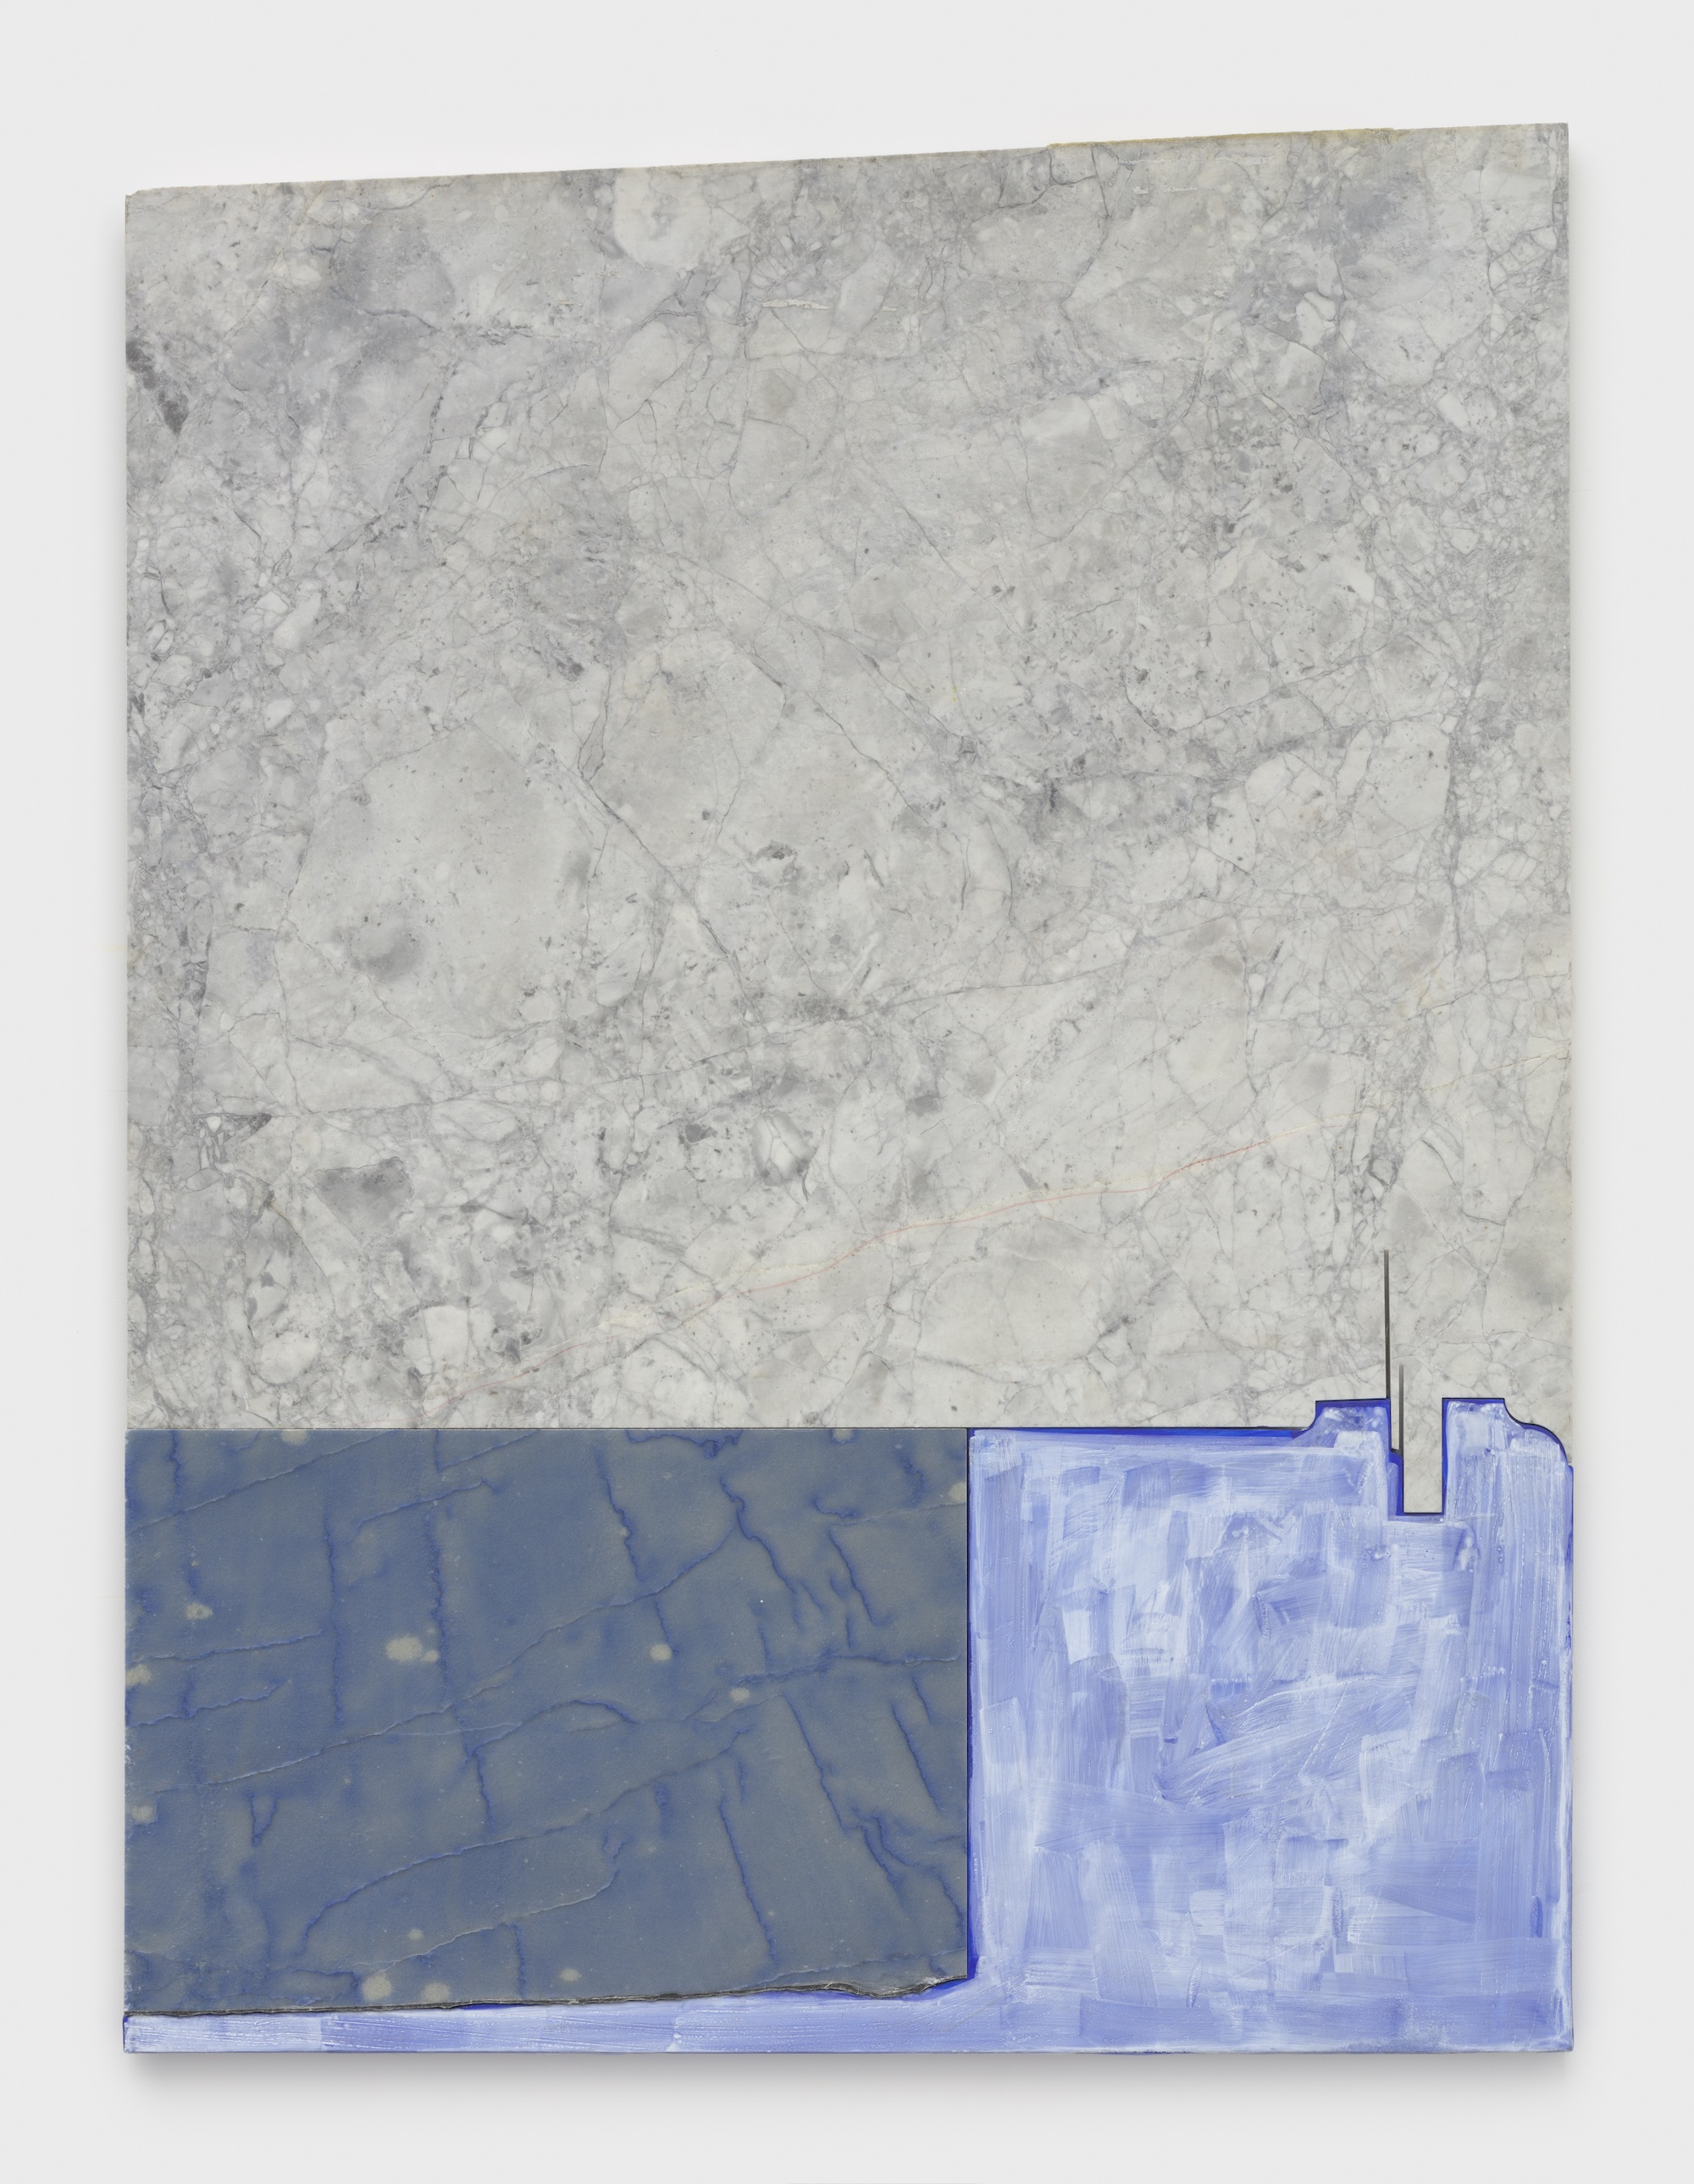 Sam Moyer April City, 2021 marble, acrylic on plaster-coated canvas mounted to MDF 51 x 38 x 1 inches (129.5 x 96.5 x 2.5 cm) © Sam Moyer Photo: JSP Art Photography Courtesy: the artist and Sean Kelly, New York